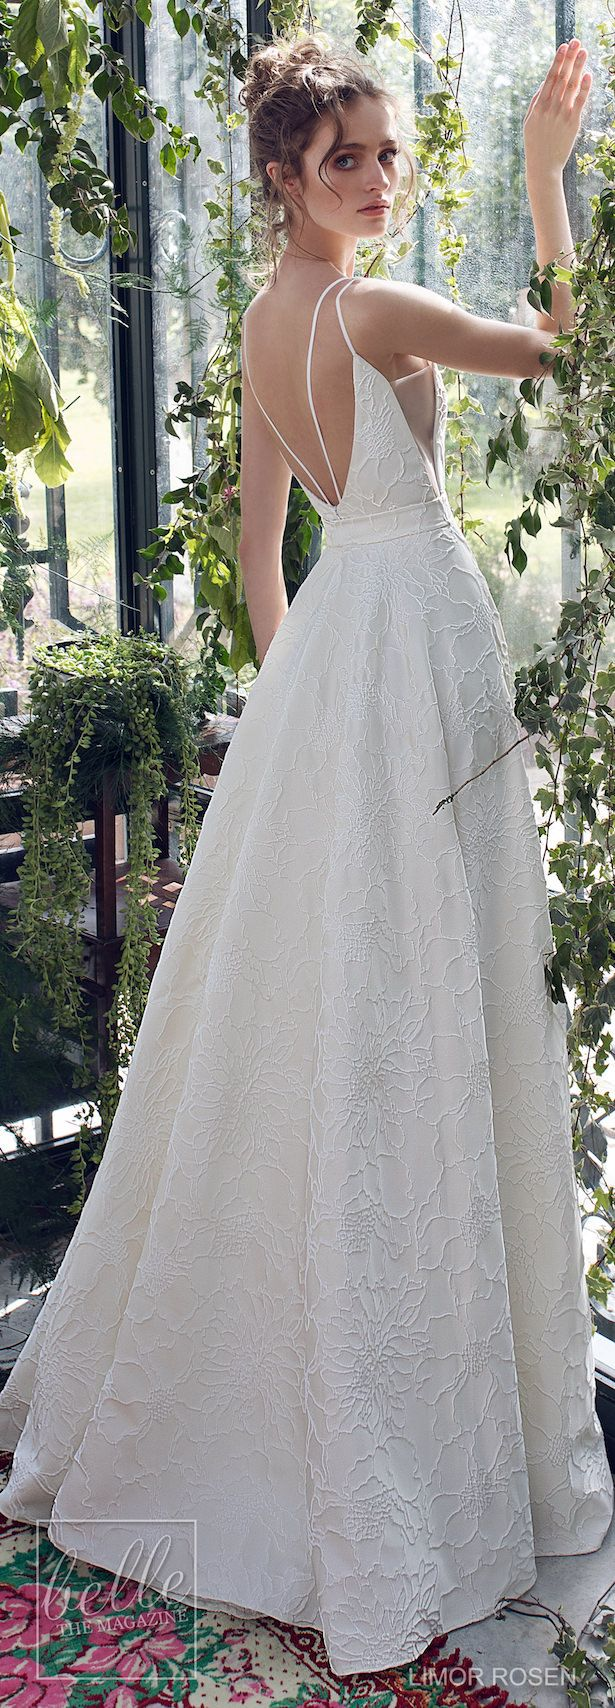 XO by Limor Roses 2019 Wedding Dresses - Autumn simple ball gown wedding dress |